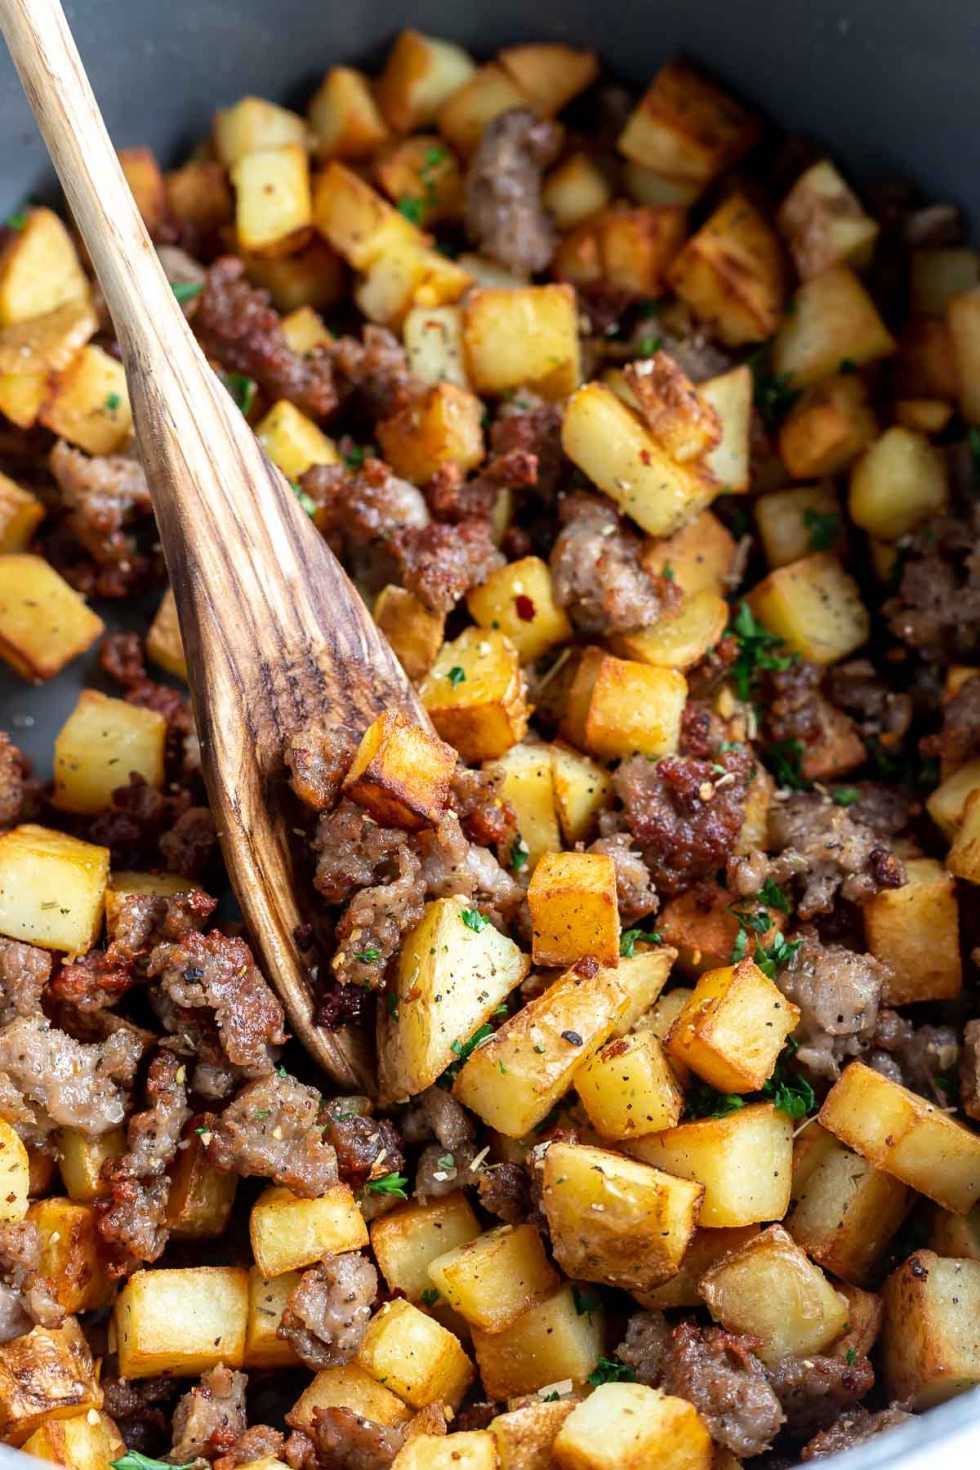 fried potatoes and sausage hash in pot with wooden spoon